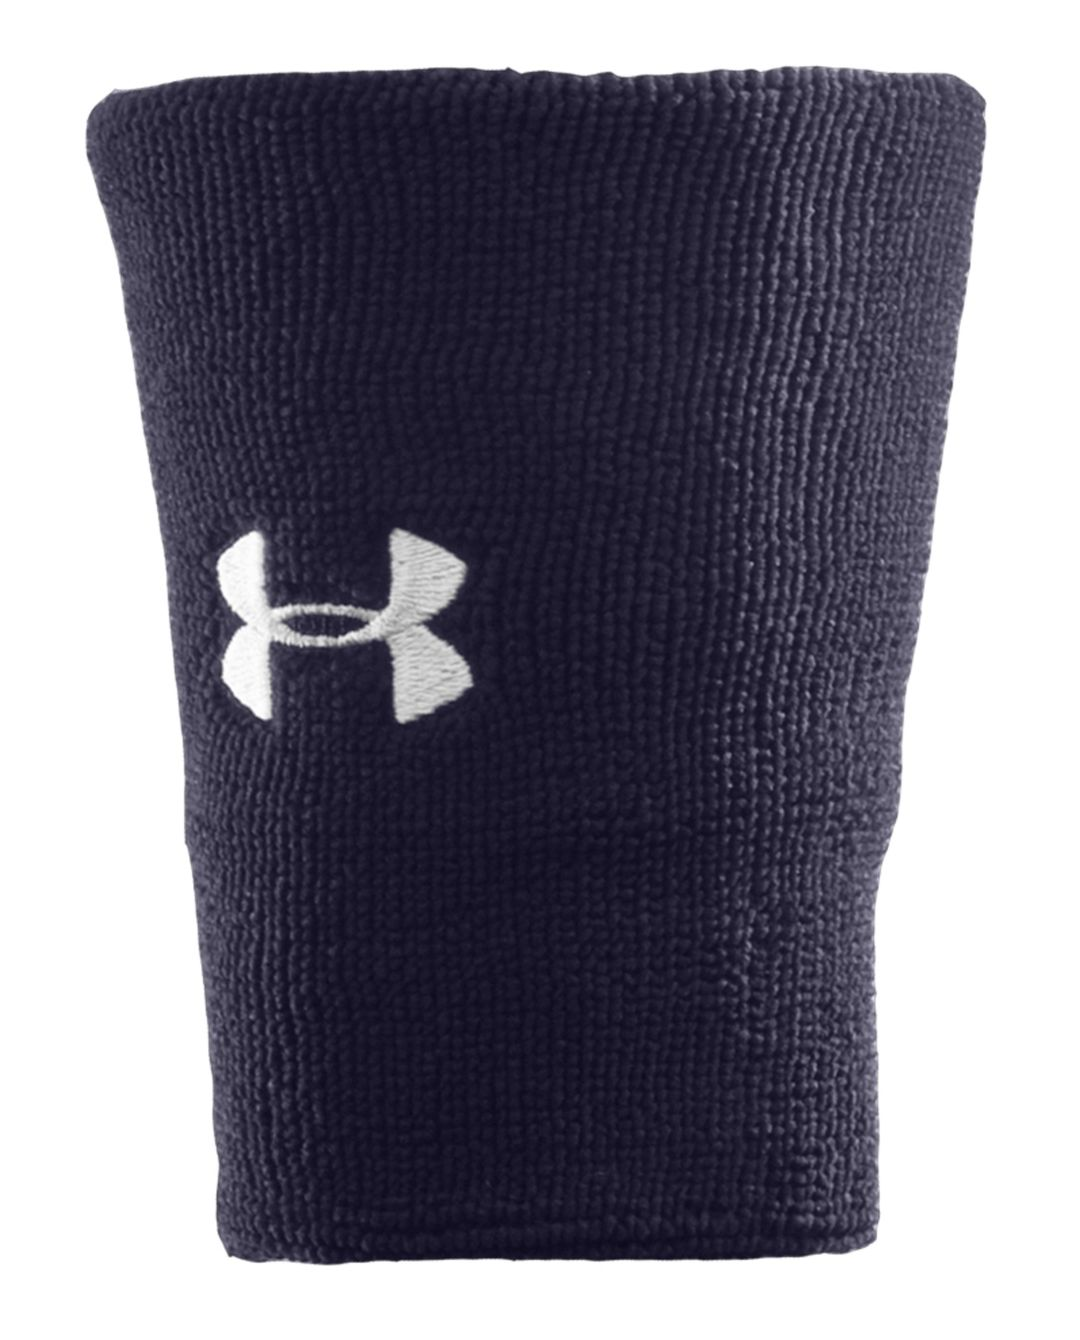 low priced d8835 61d3a Under Armour Performance Wristbands - 6